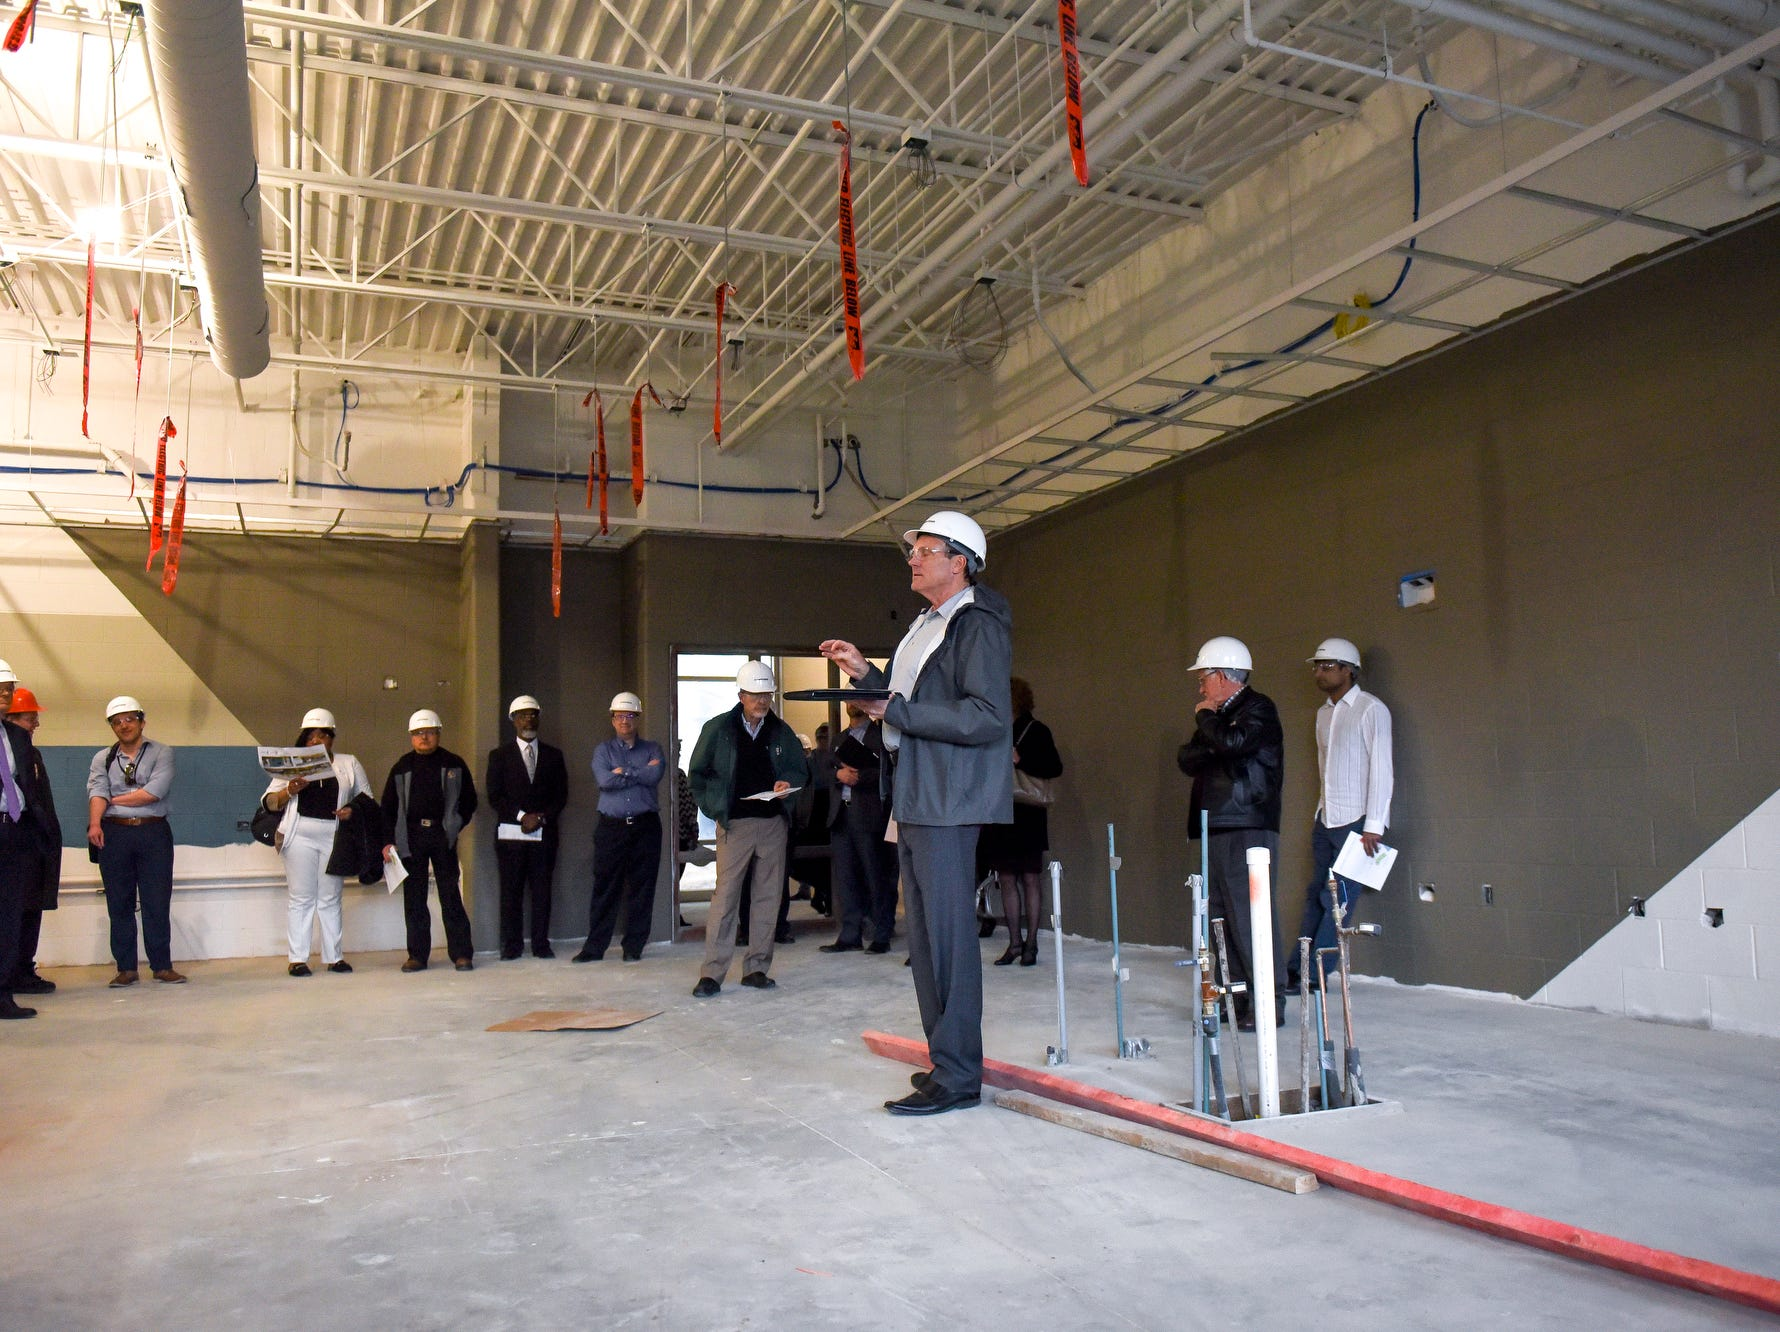 Bob McGraw, building group leader for C2AE, center, talks about the science lab during a tour of the construction of the new Eastern High School on Thursday, March 14, 2019, in Lansing. The project is being funded by the district's successful Pathway Promise millage, which was passed by voters in 2016. The building was formerly Pattengill Academy.